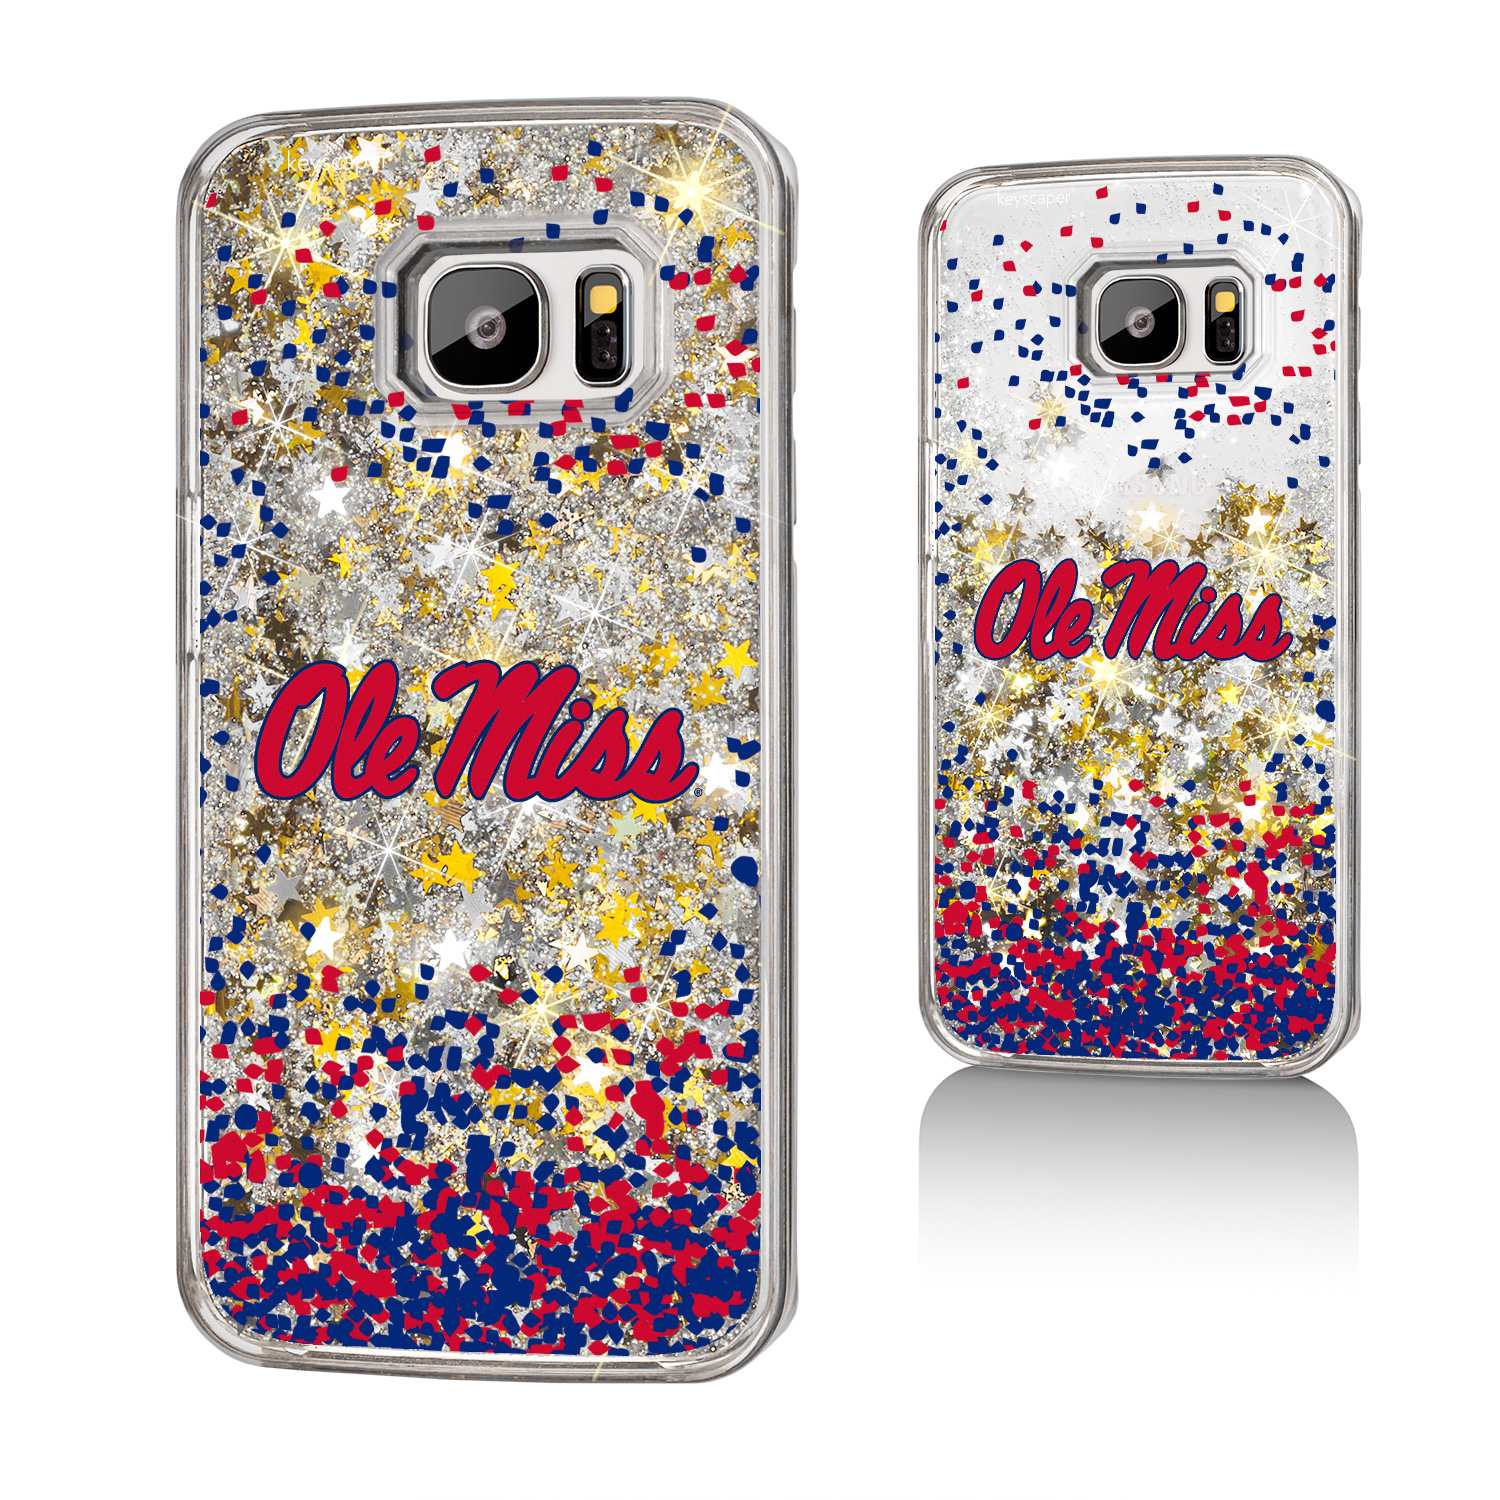 UM Mississippi Ole Miss Rebels Confetti Glitter Case for Galaxy S7